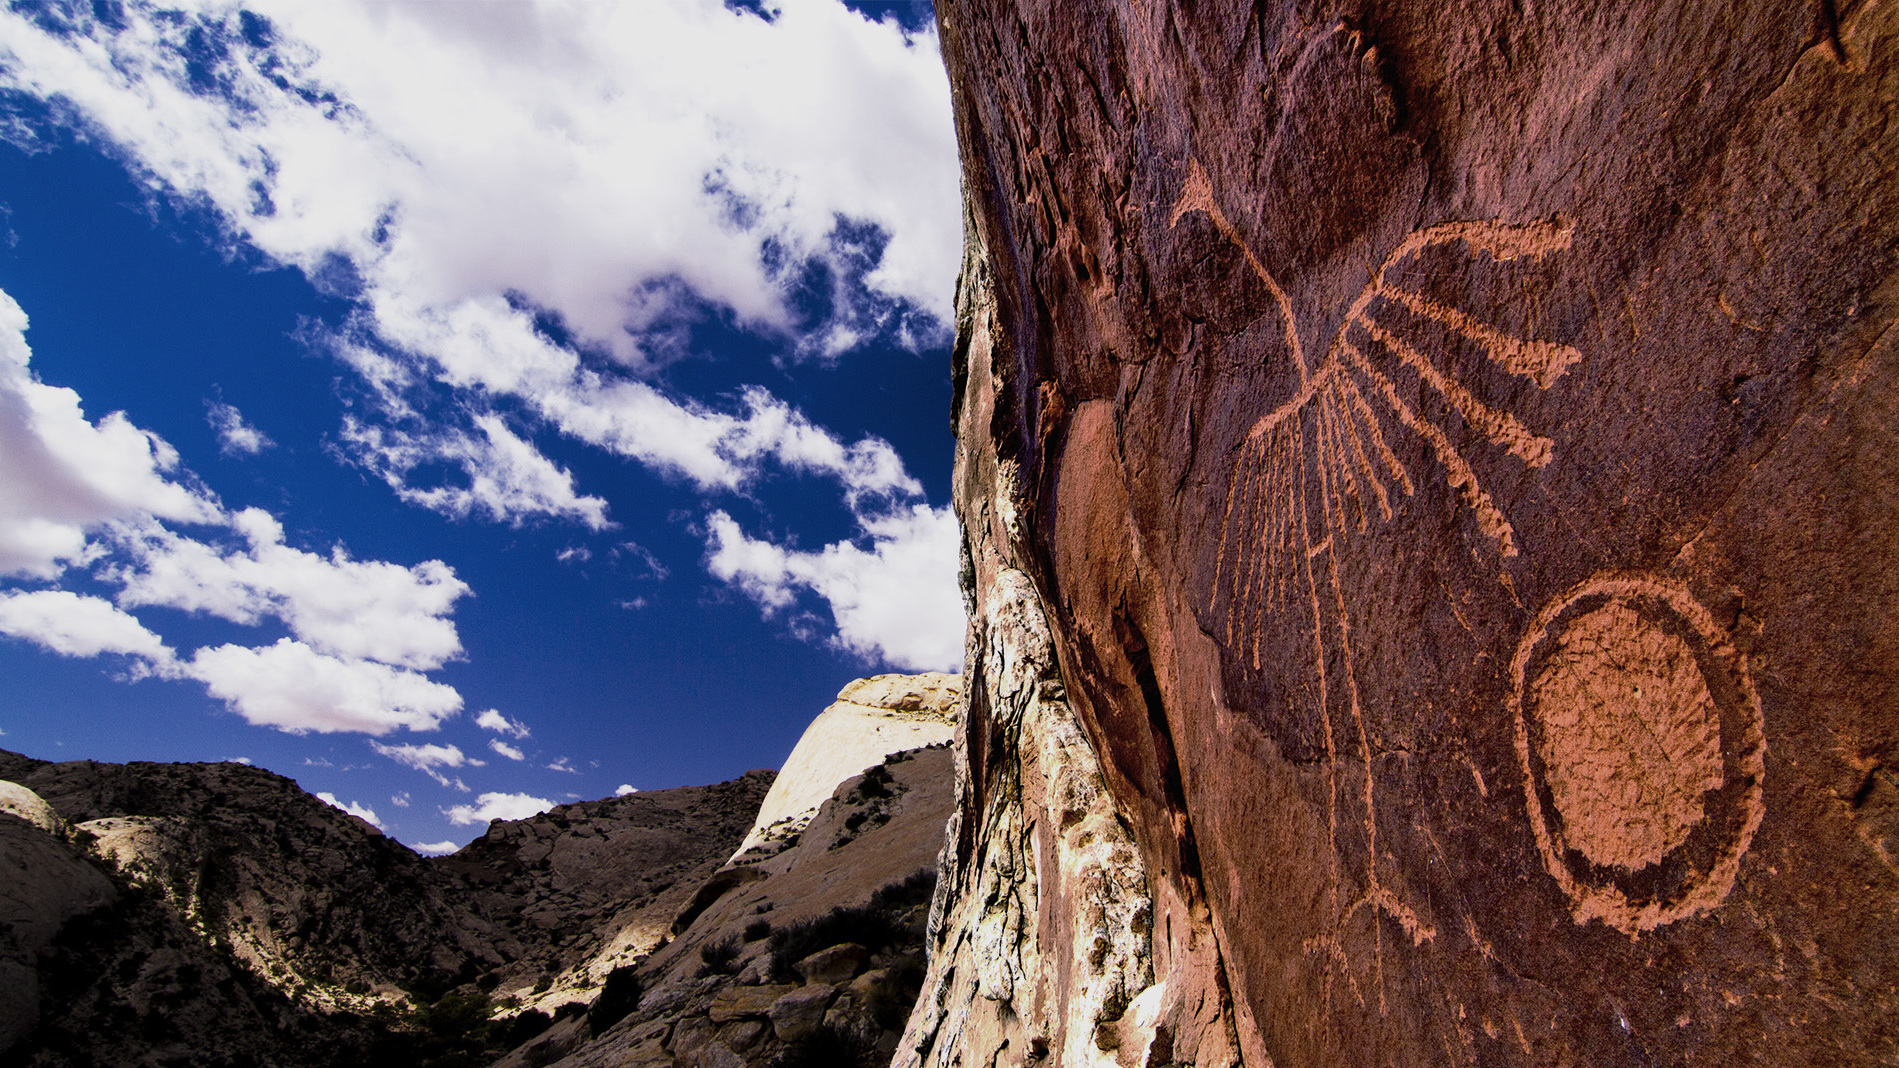 A petroglyph of a crane on Comb Ridge, part of the Bears Ears National Monument. The Ancestral Puebloans lived in the area's alcoves and grew corn in its washes, according to the Bears Ears Inter-Tribal Coalition.